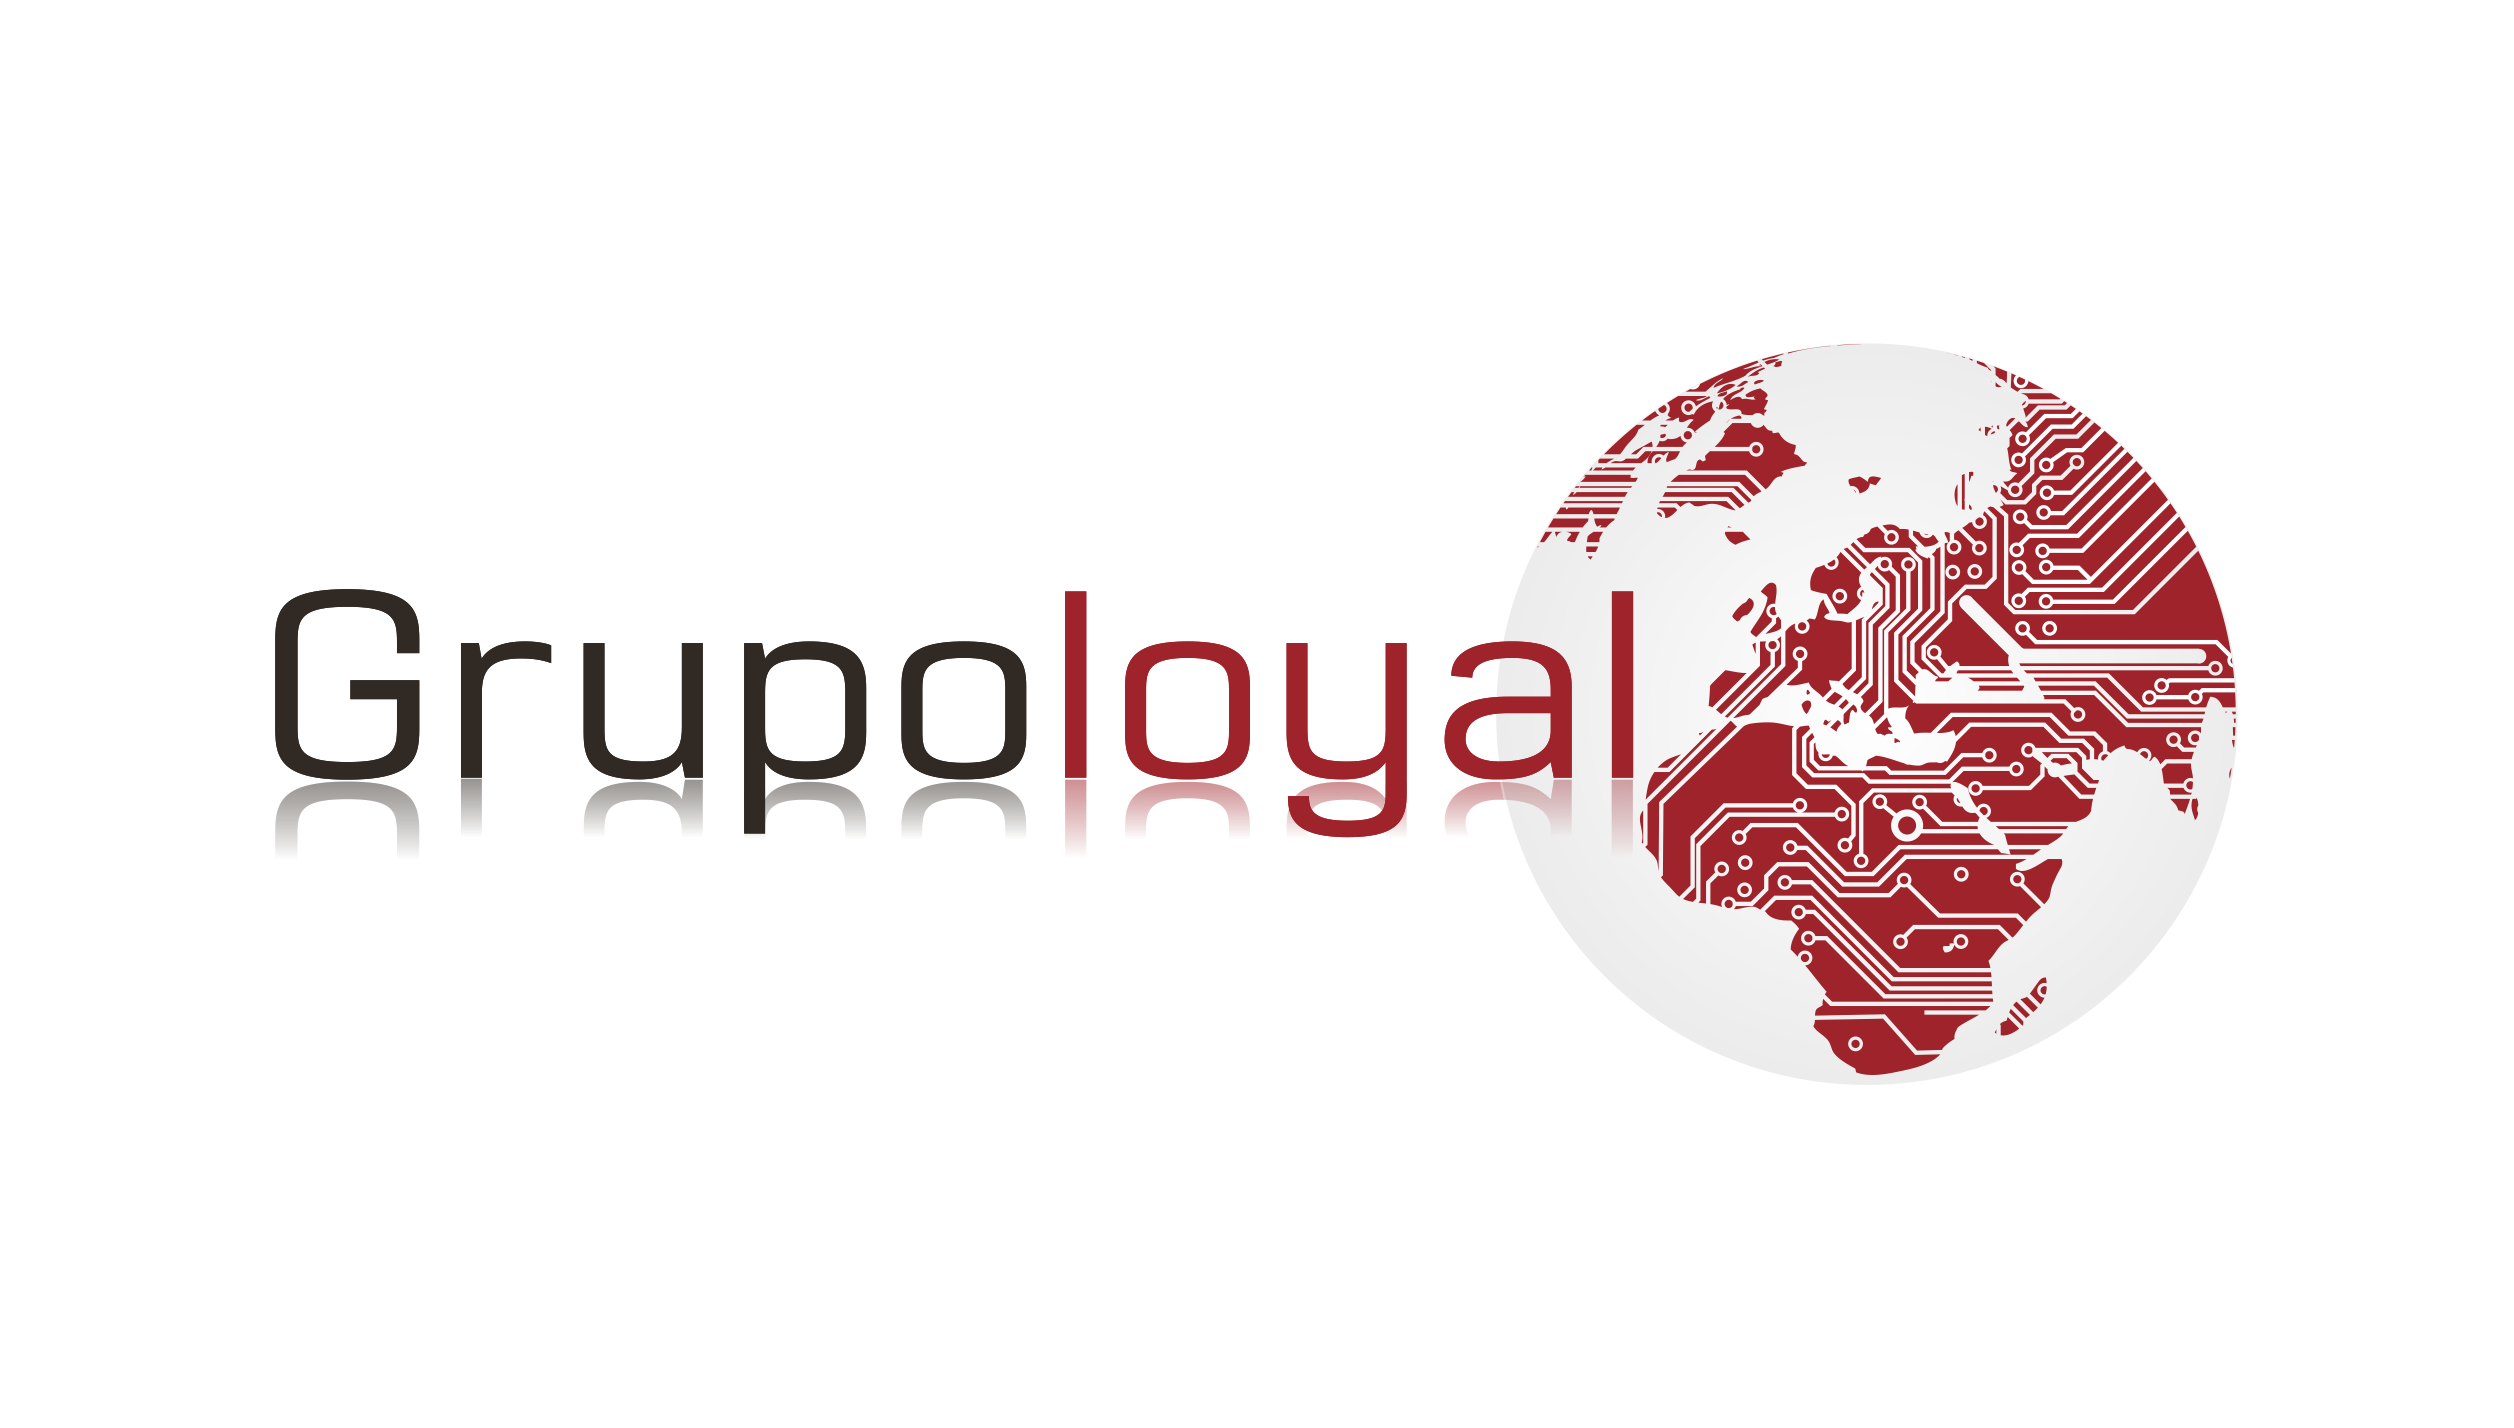 Grupo-Loyal-logo